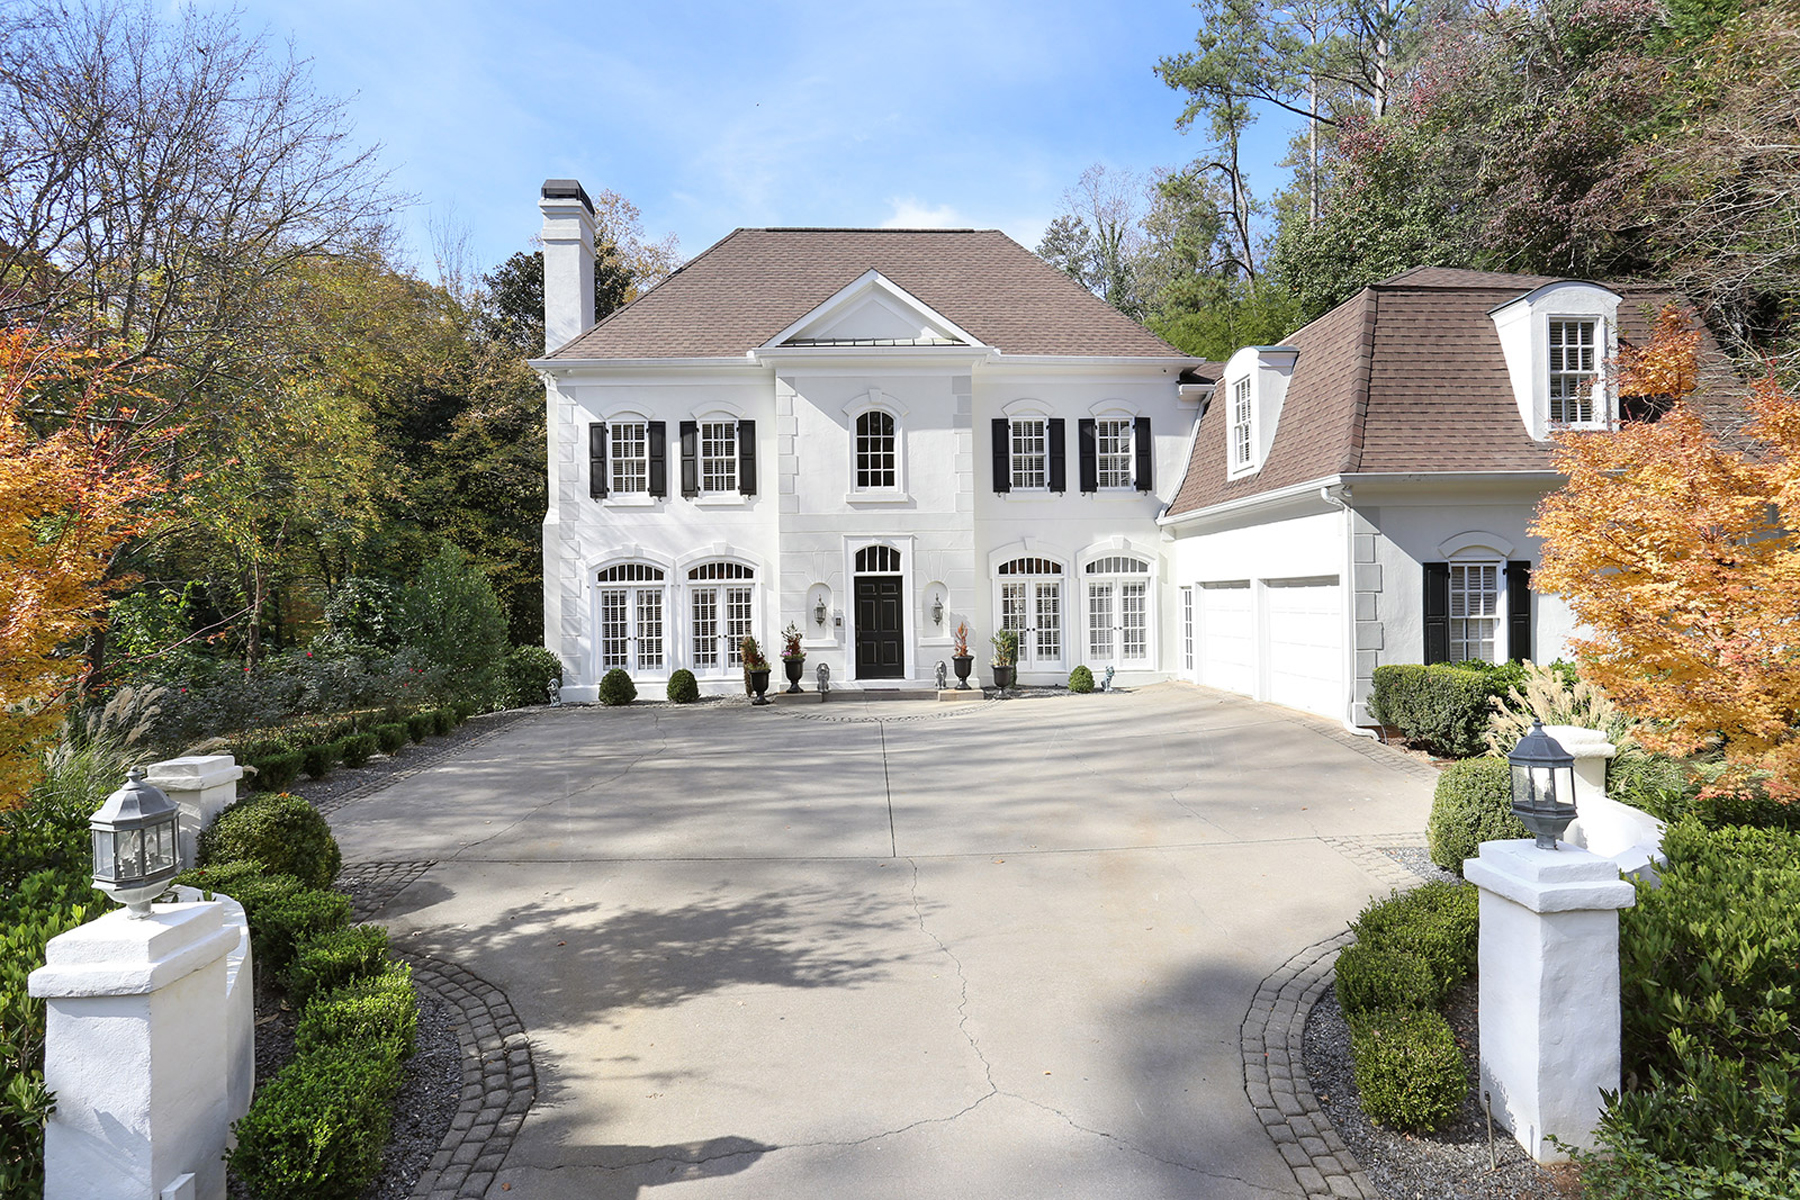 Einfamilienhaus für Verkauf beim Sophisticated French Provincial located in desirable Chastain Park 4401 Jett Place NW, Chastain Park, Atlanta, Georgia, 30327 Vereinigte Staaten